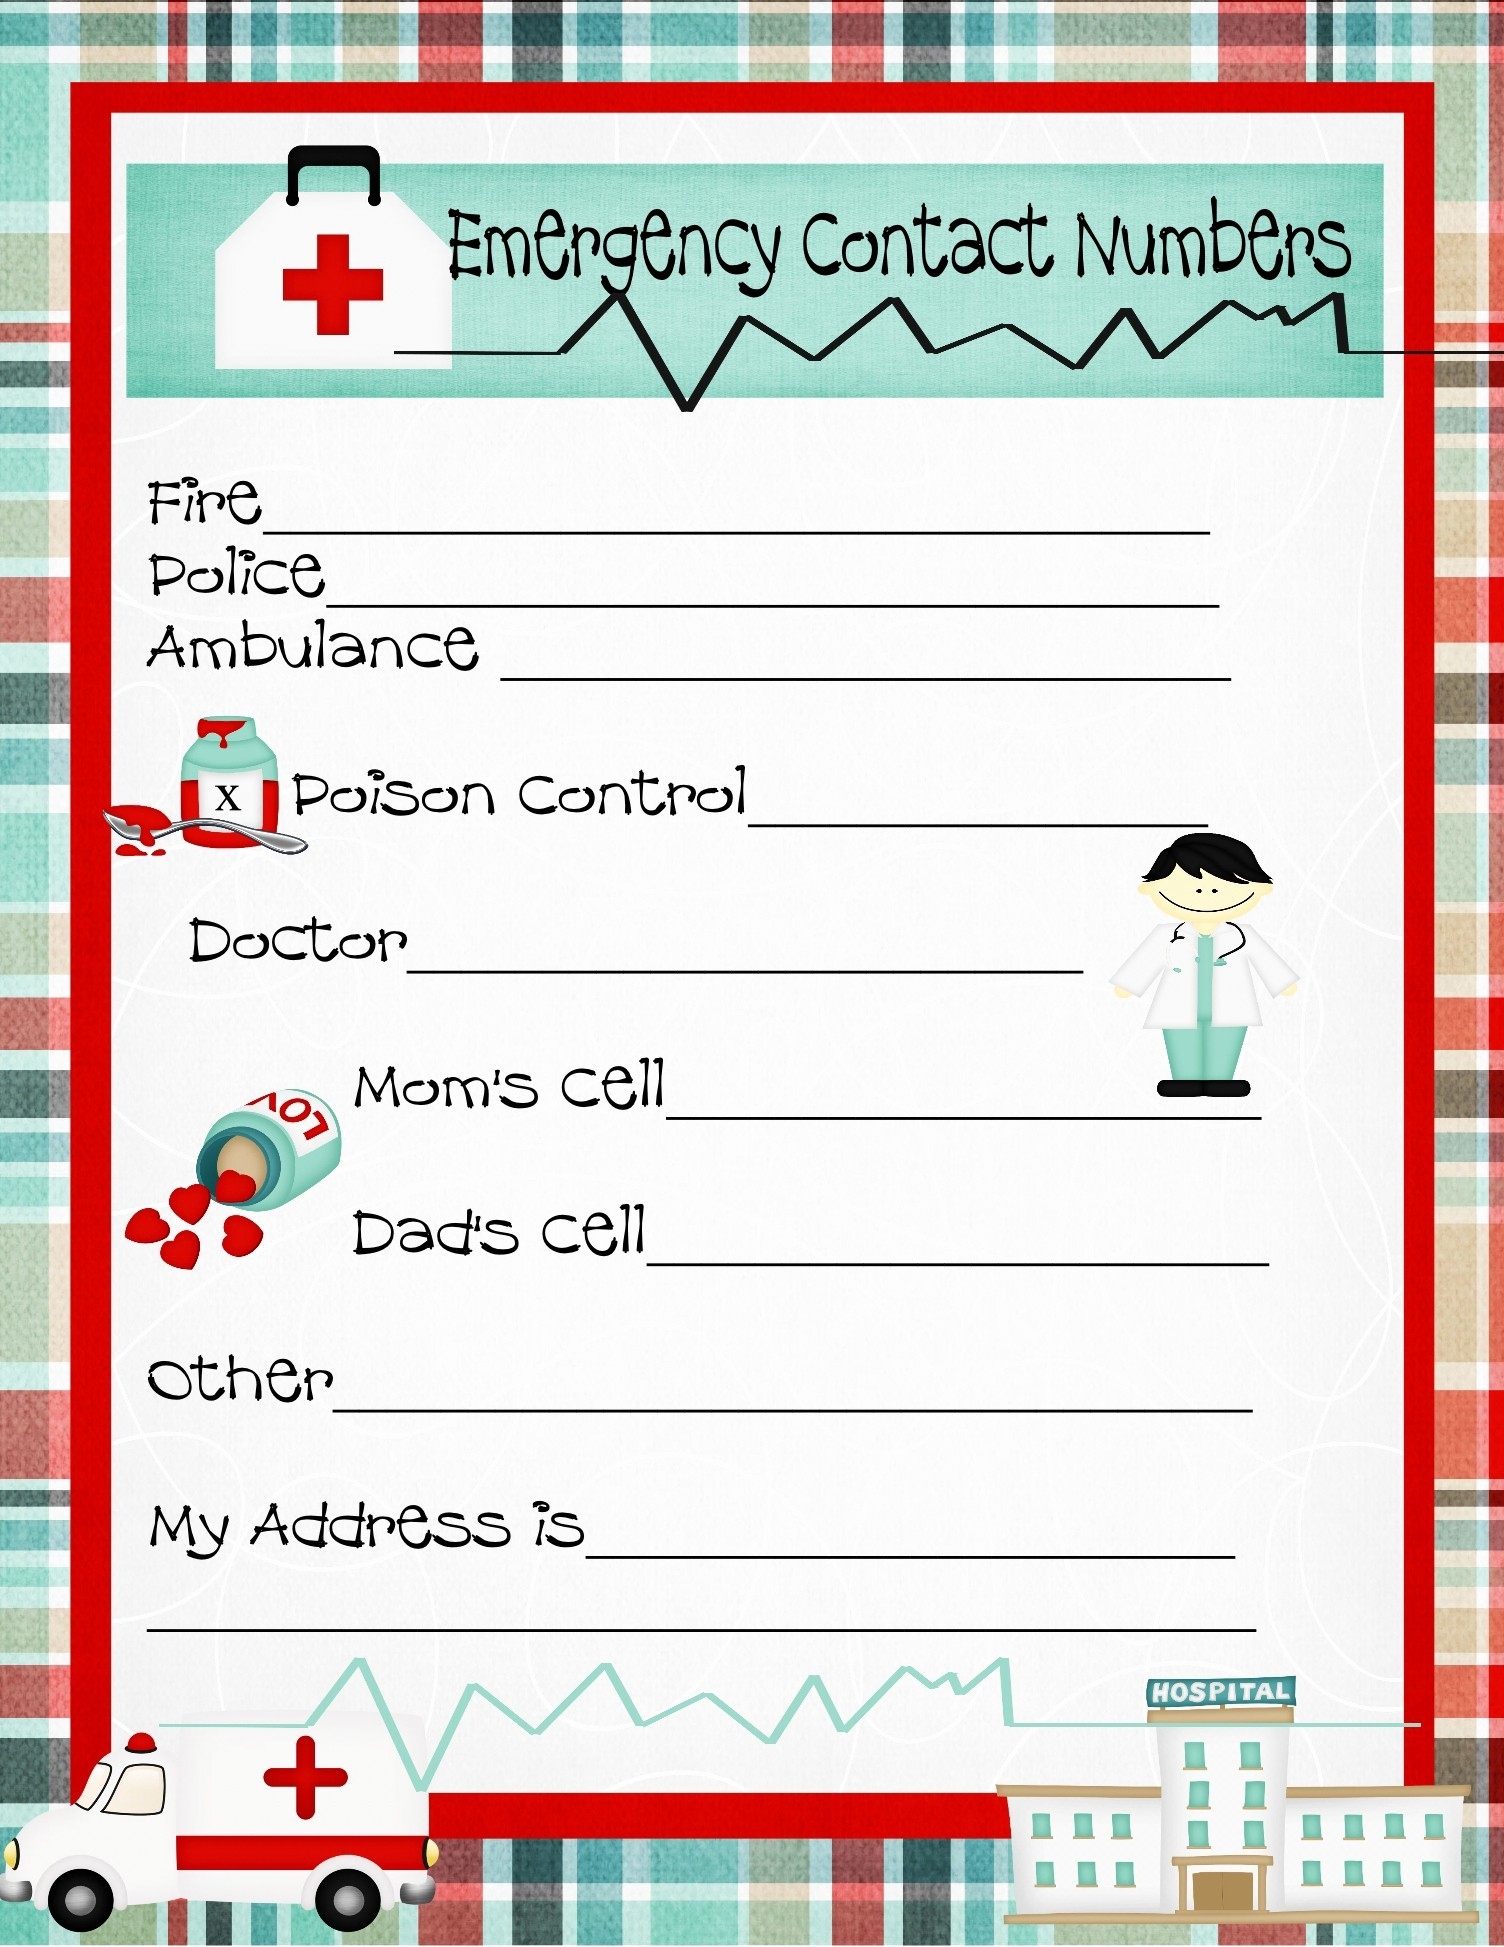 Emergency Contact List for Kids Lovely Emergency Contact Phone Numbers and A Free Printable